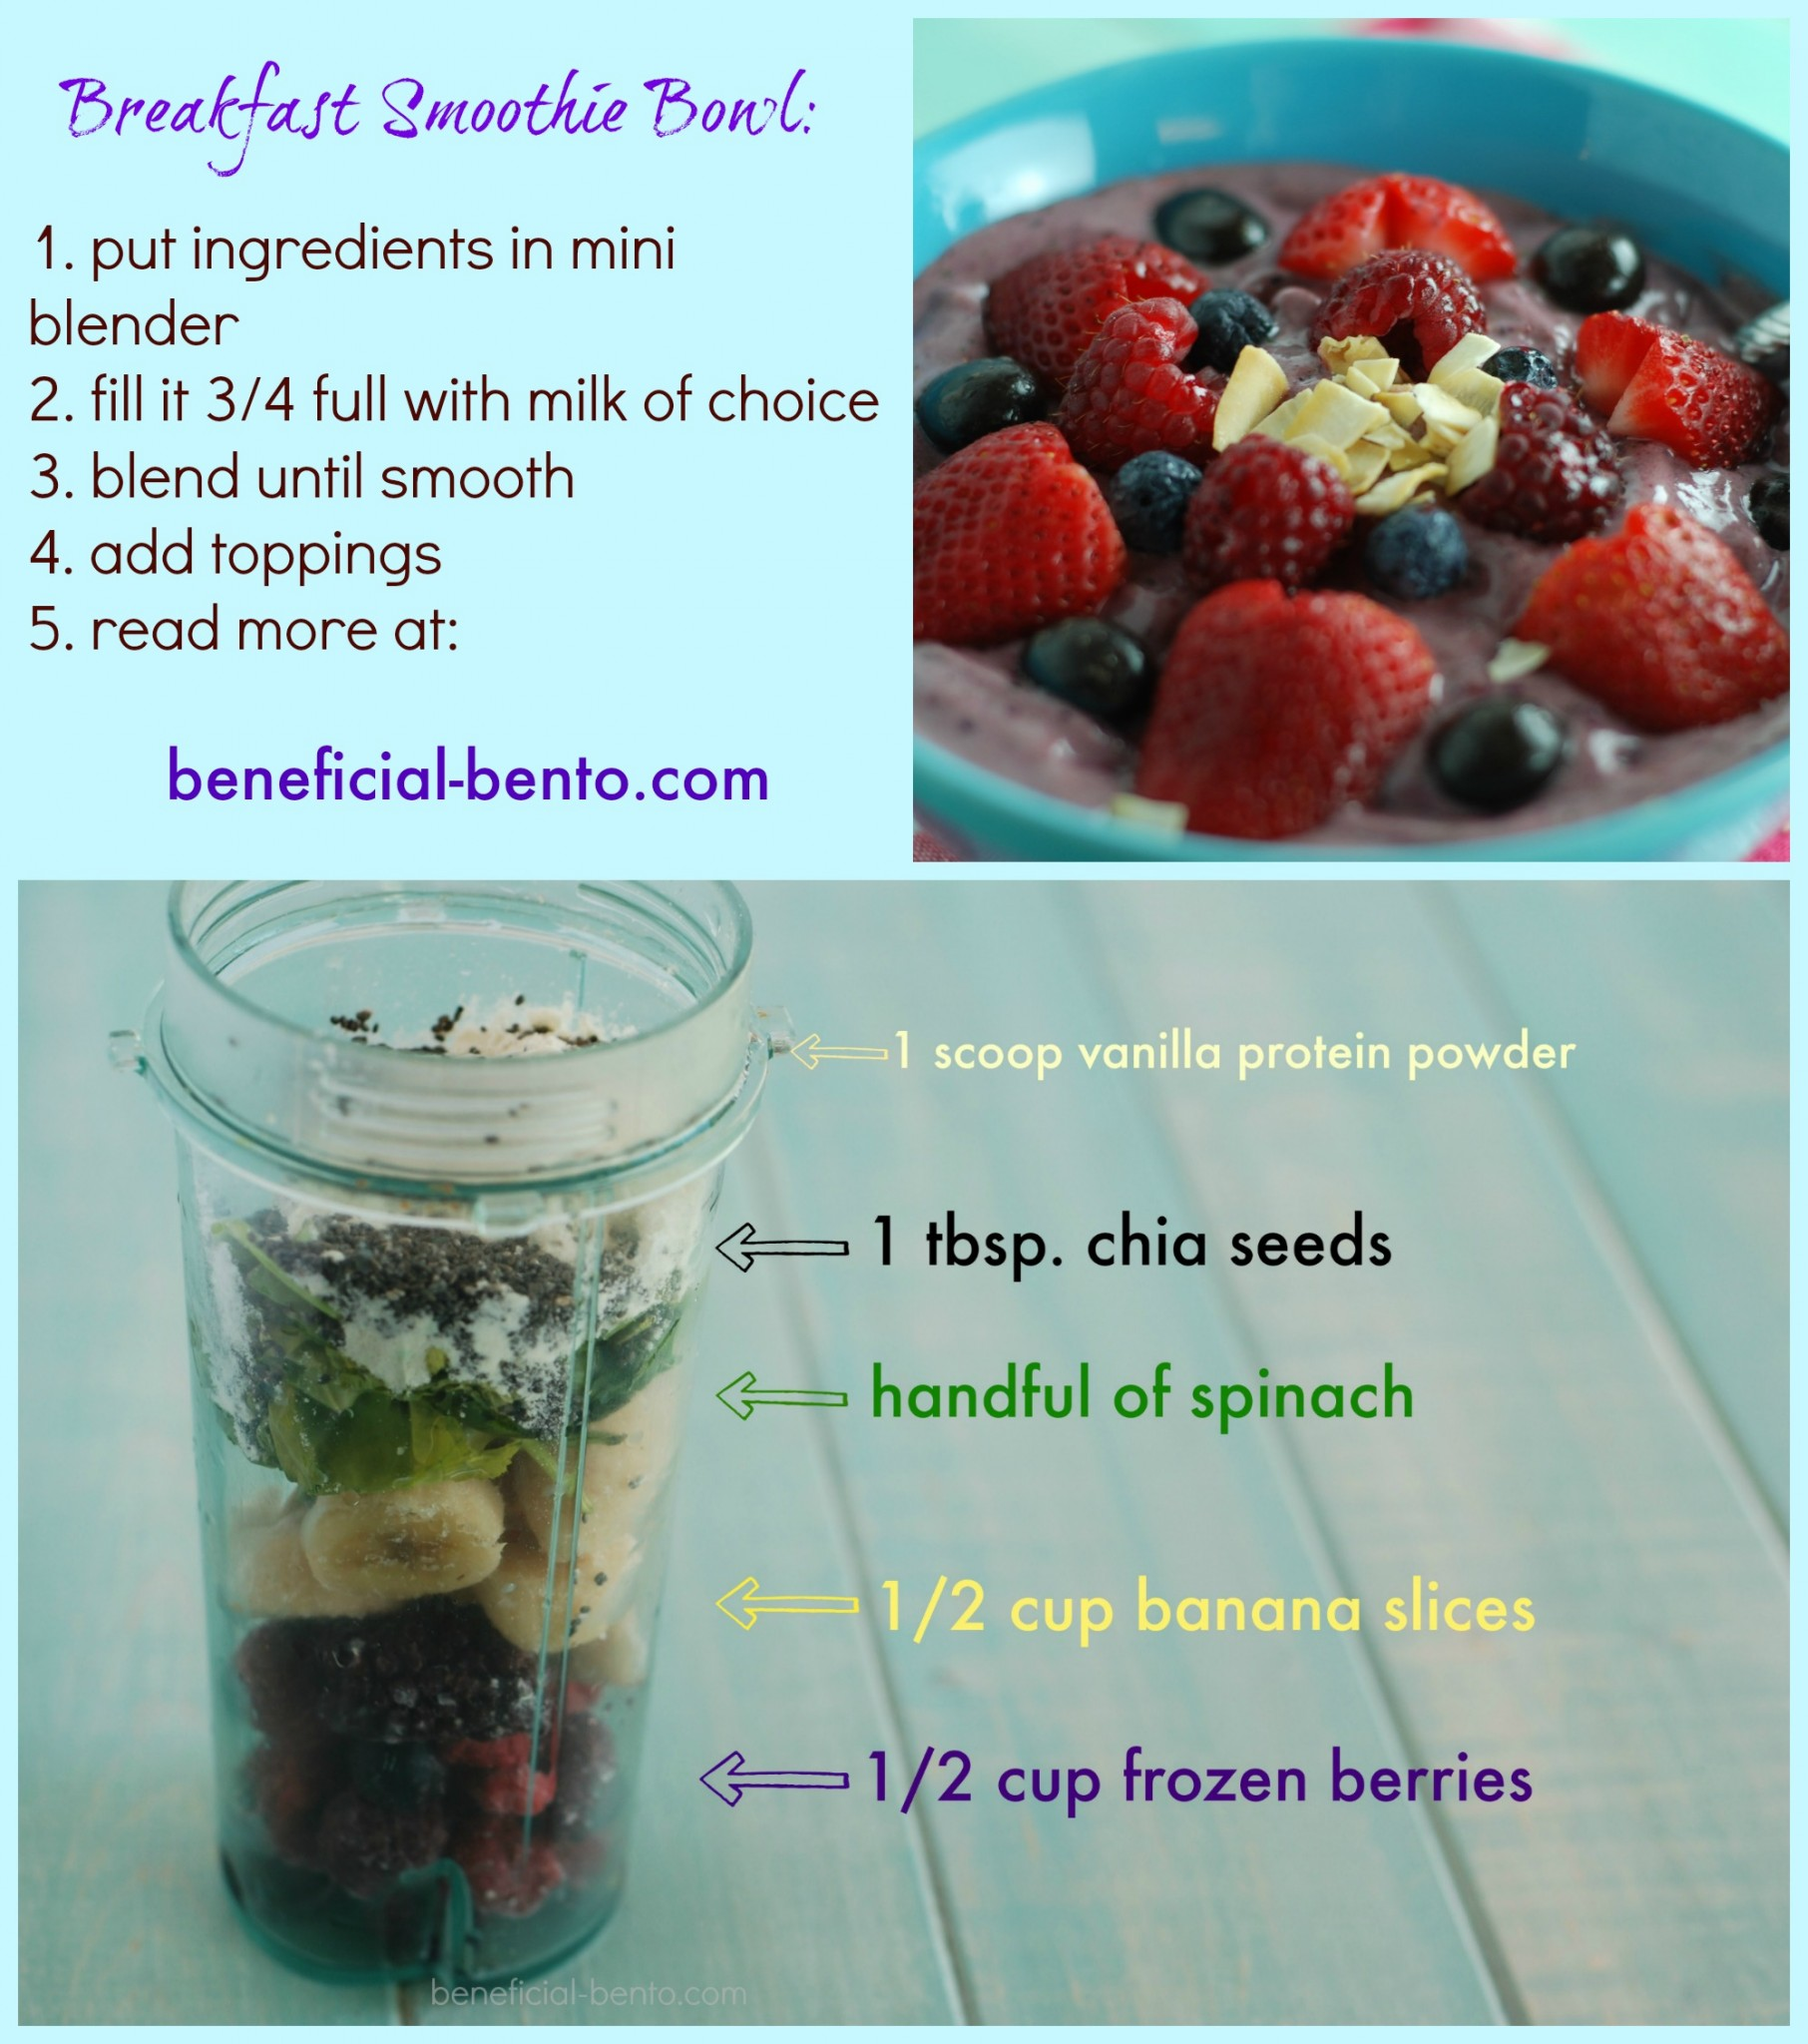 great way to pack a lot of nutrients into a treat that tastes like ice cream!